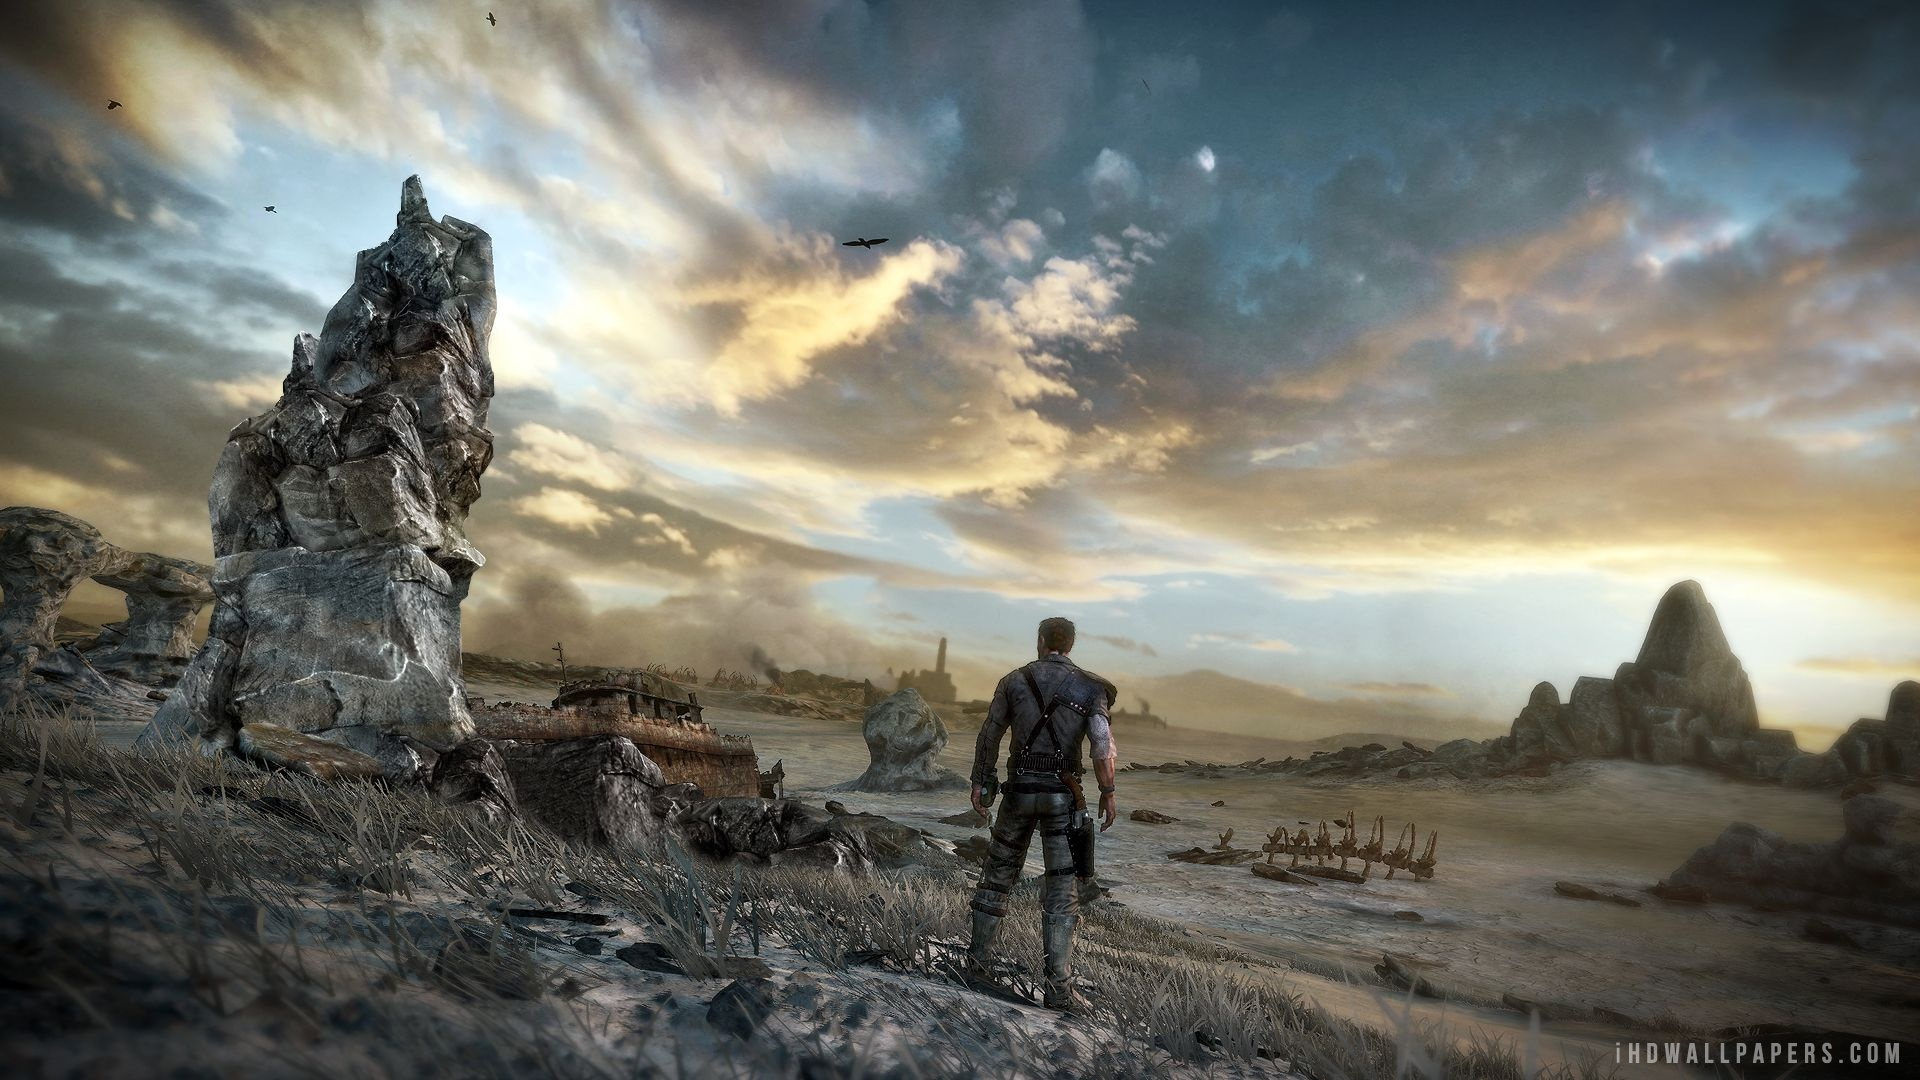 Mad Max Game HD Wallpaper   iHD Wallpapers 1920x1080